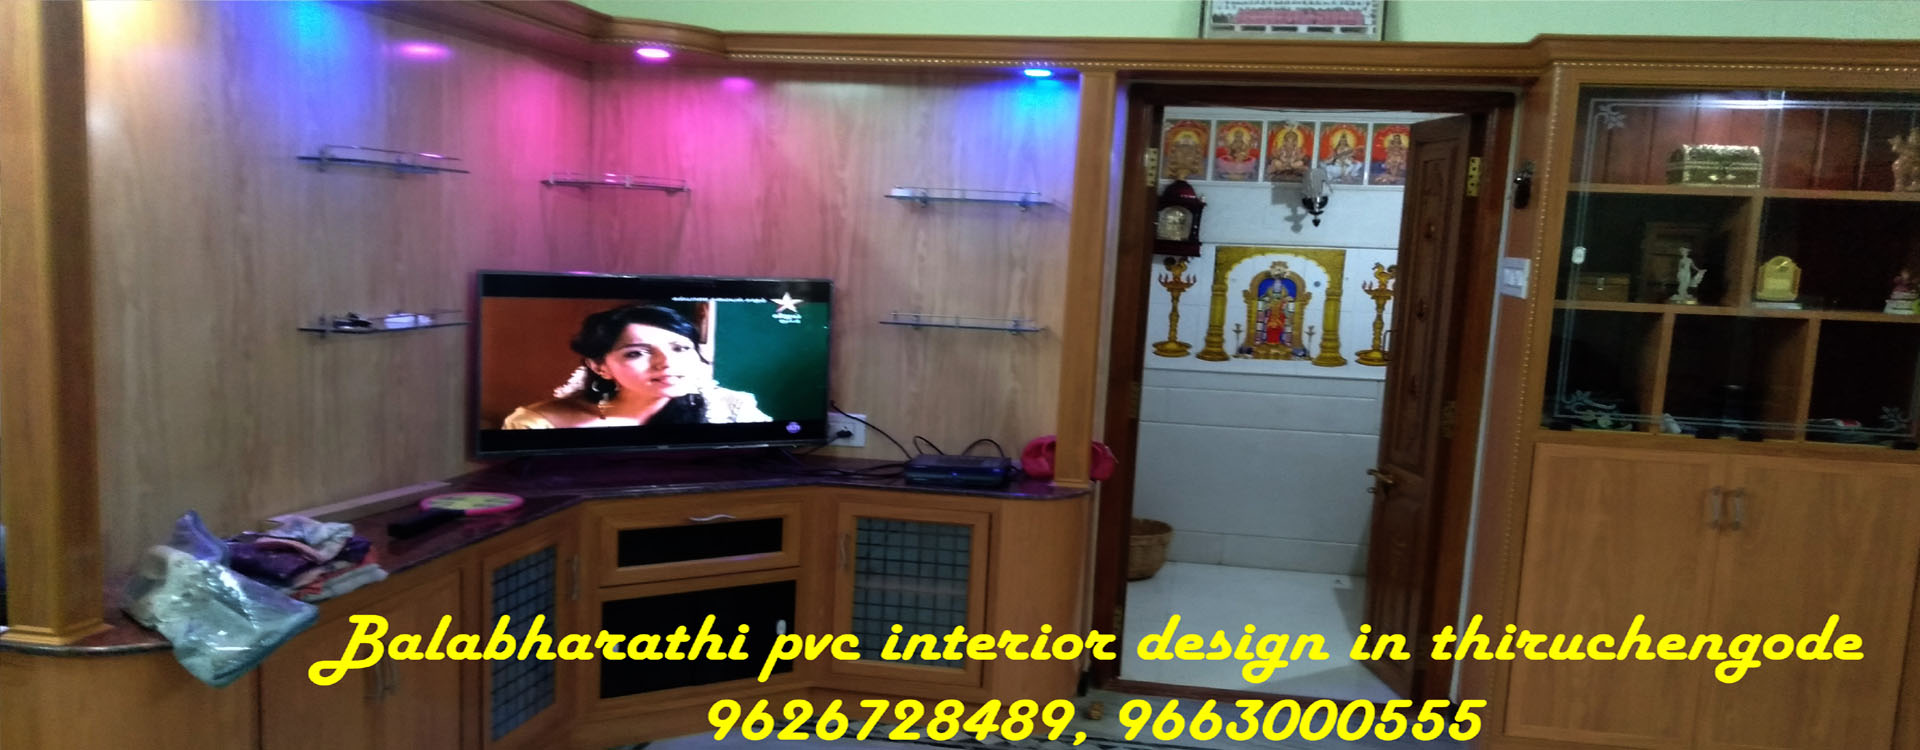 pvc interior in thiruchengode